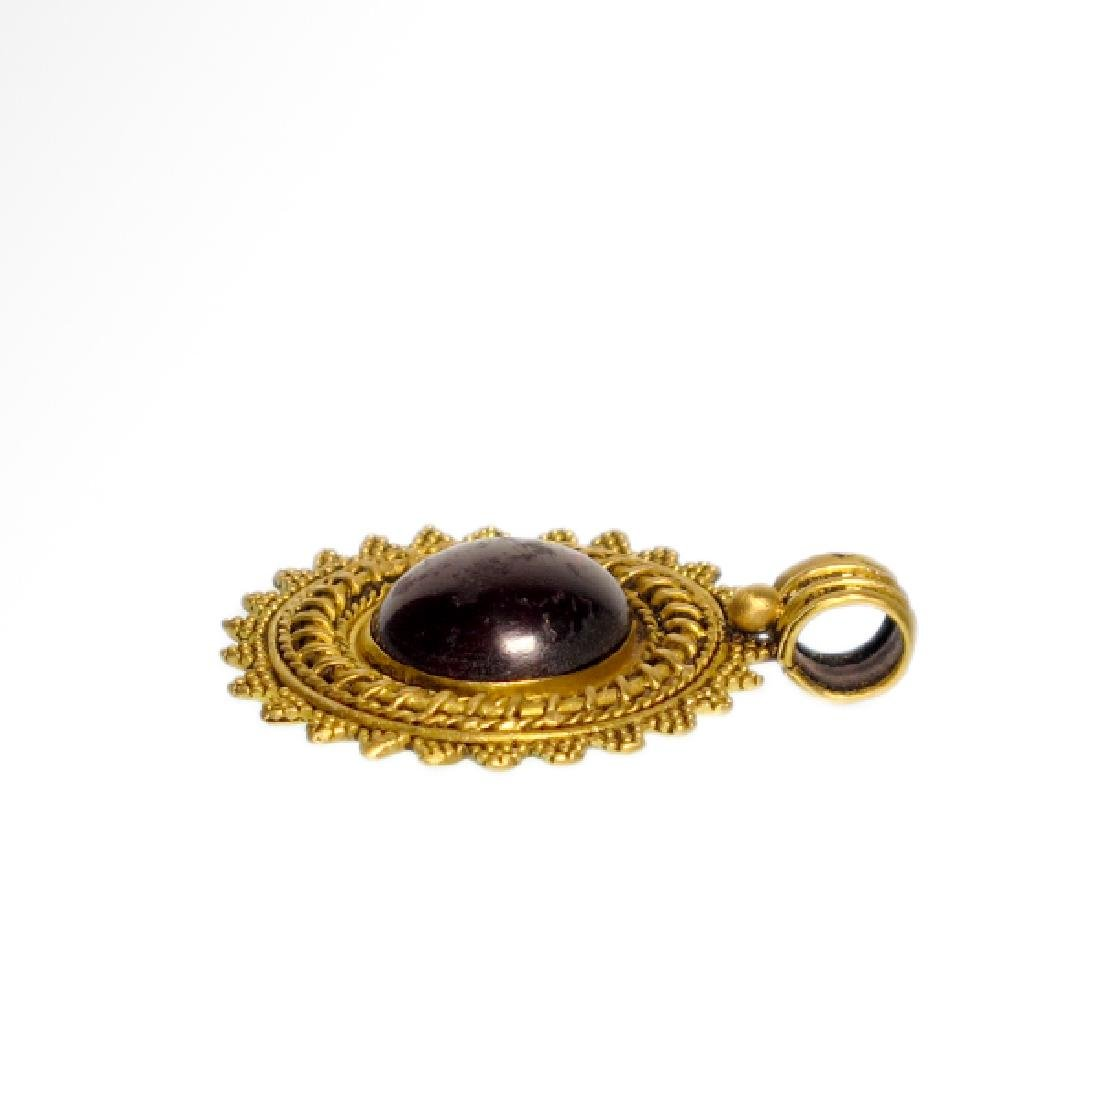 Greek Gold and Garnet Pendant, c. 2nd Century B.C. - 3